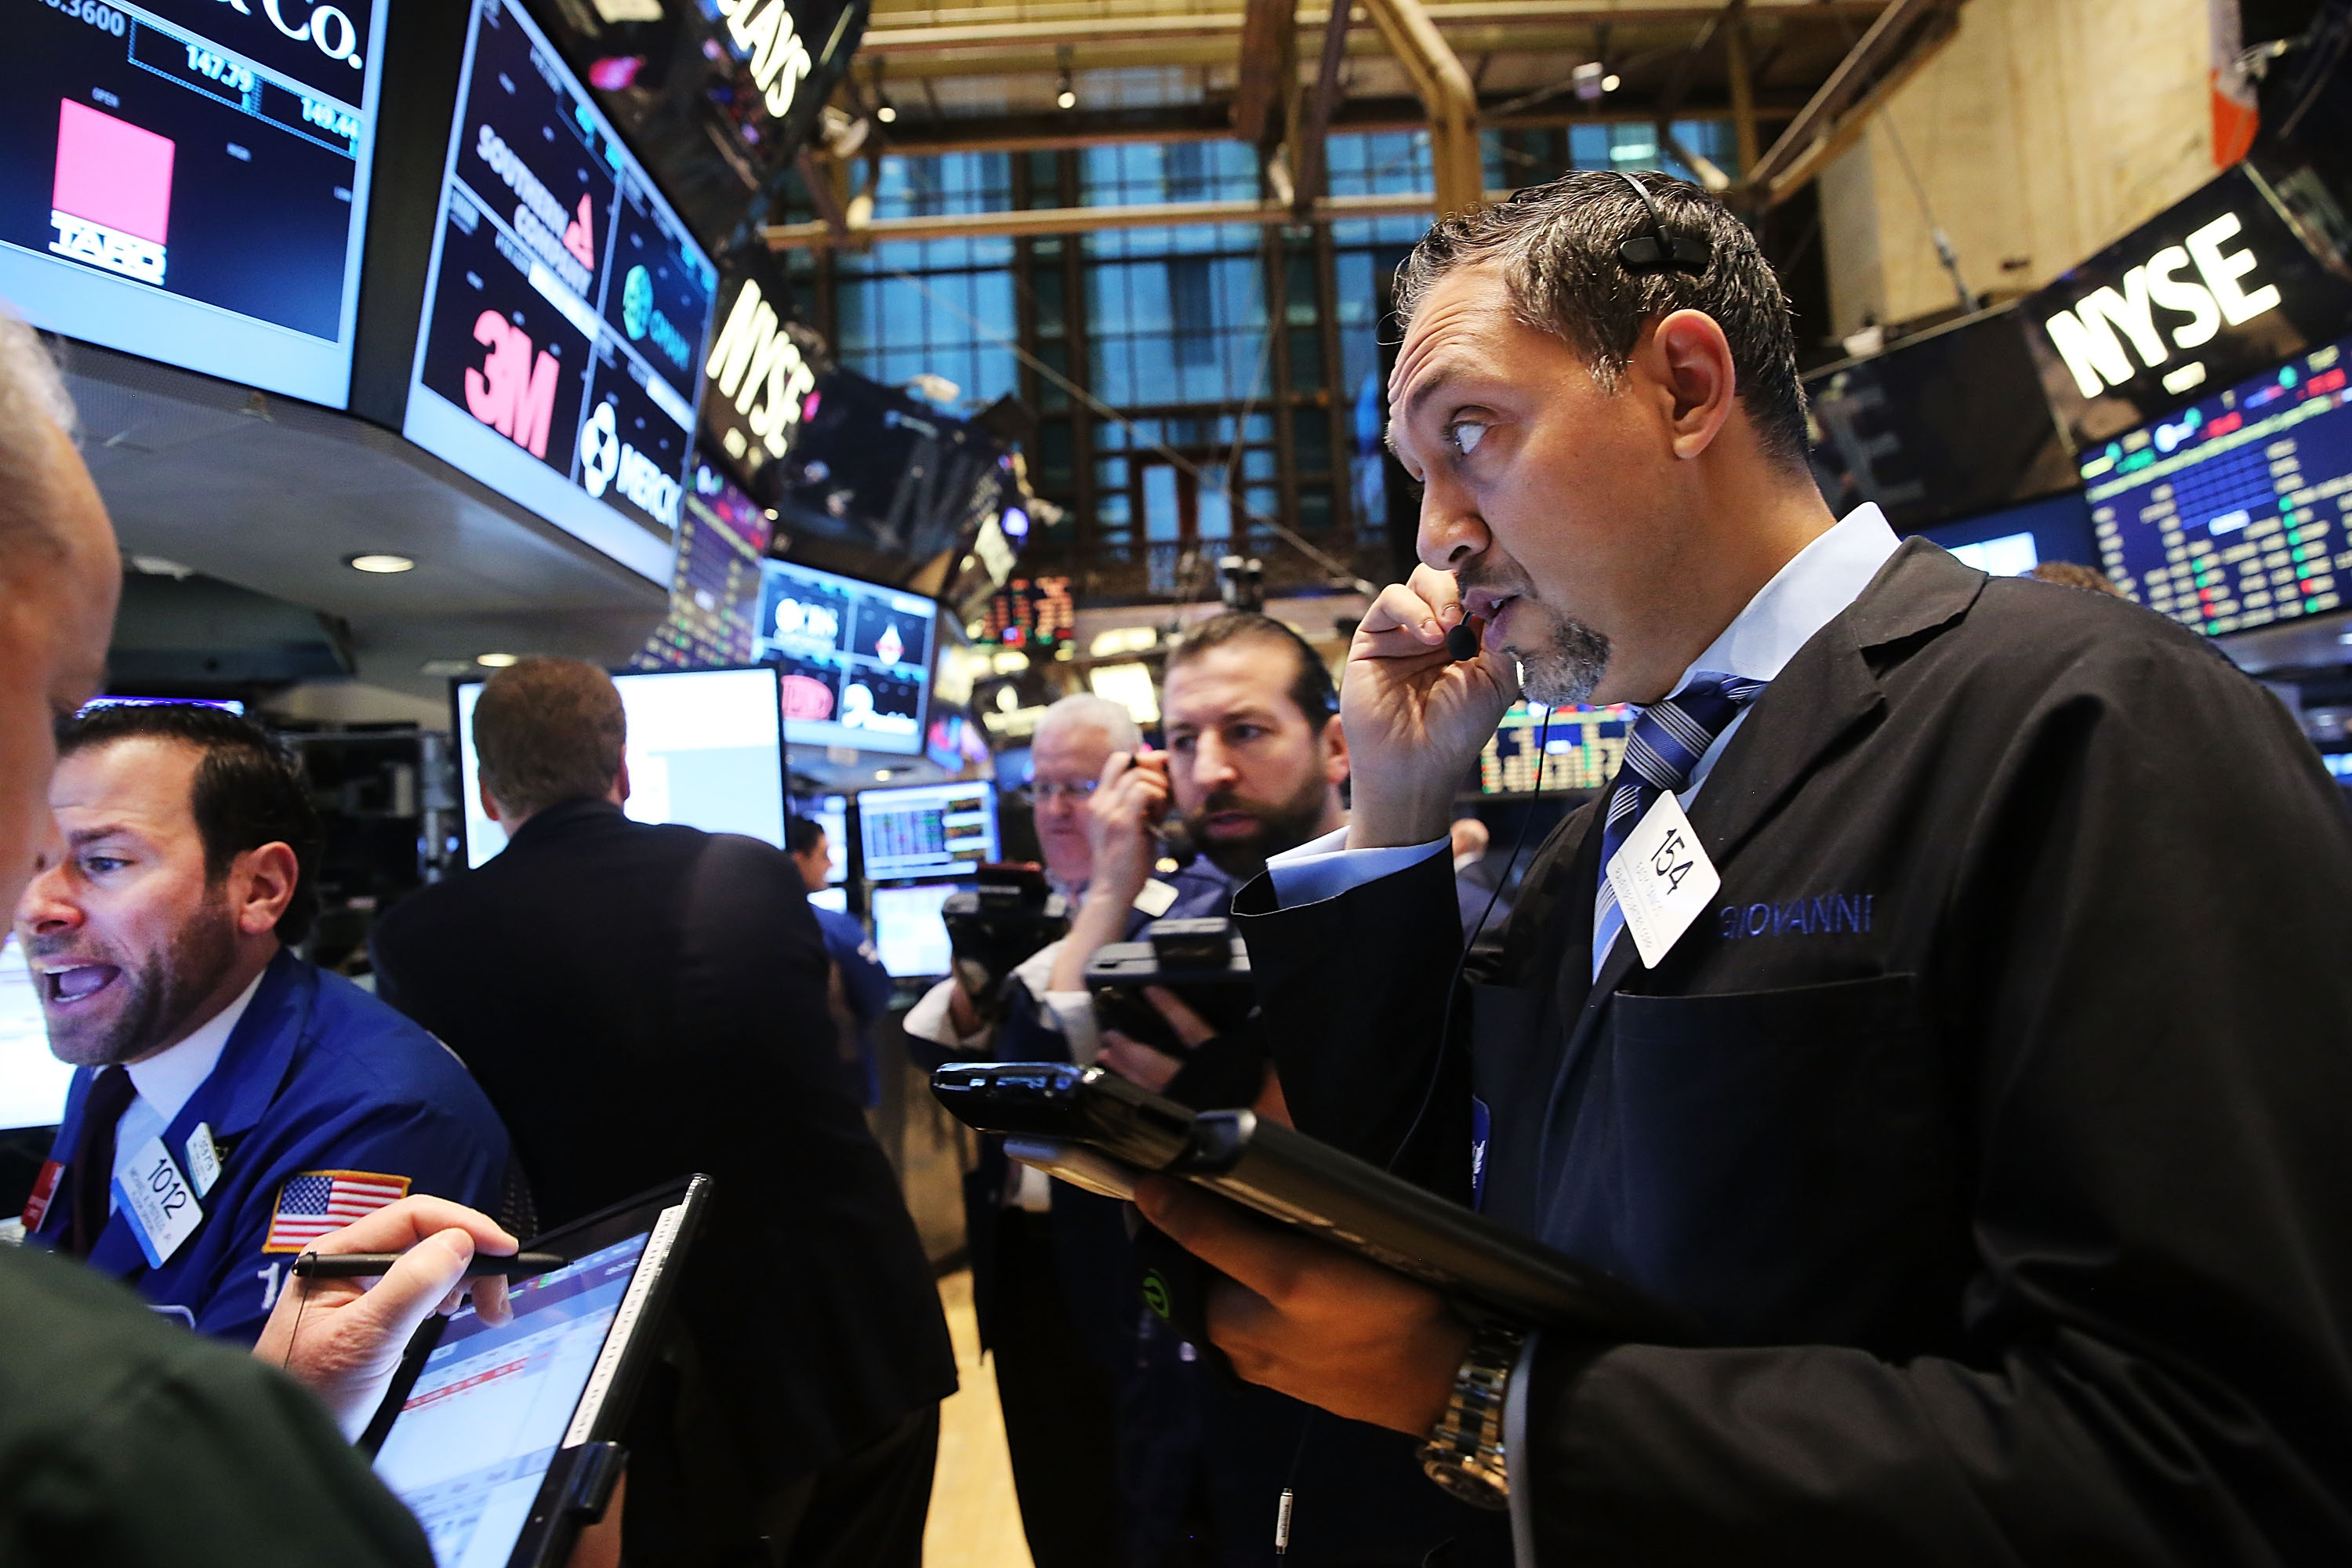 Markets Open After Rocky Week To New Earnings Reports And Falling Oil Prices